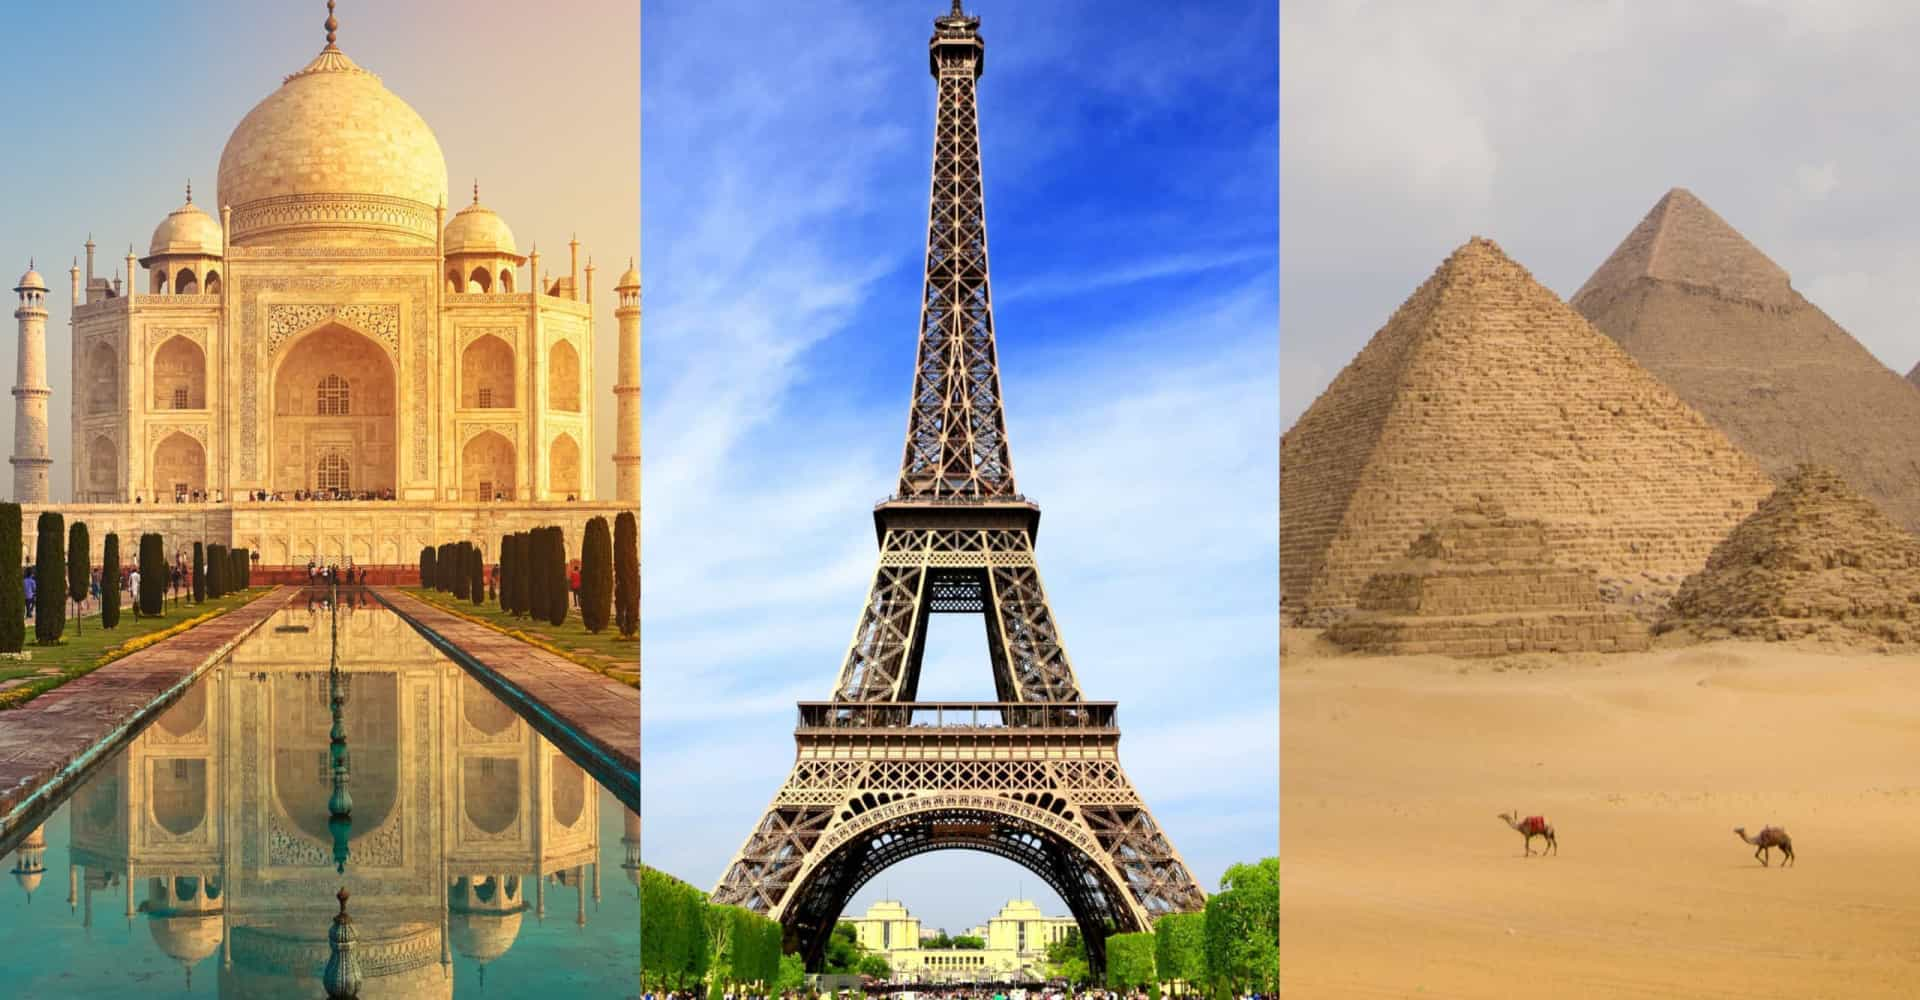 Visit these tourist attractions without leaving your couch